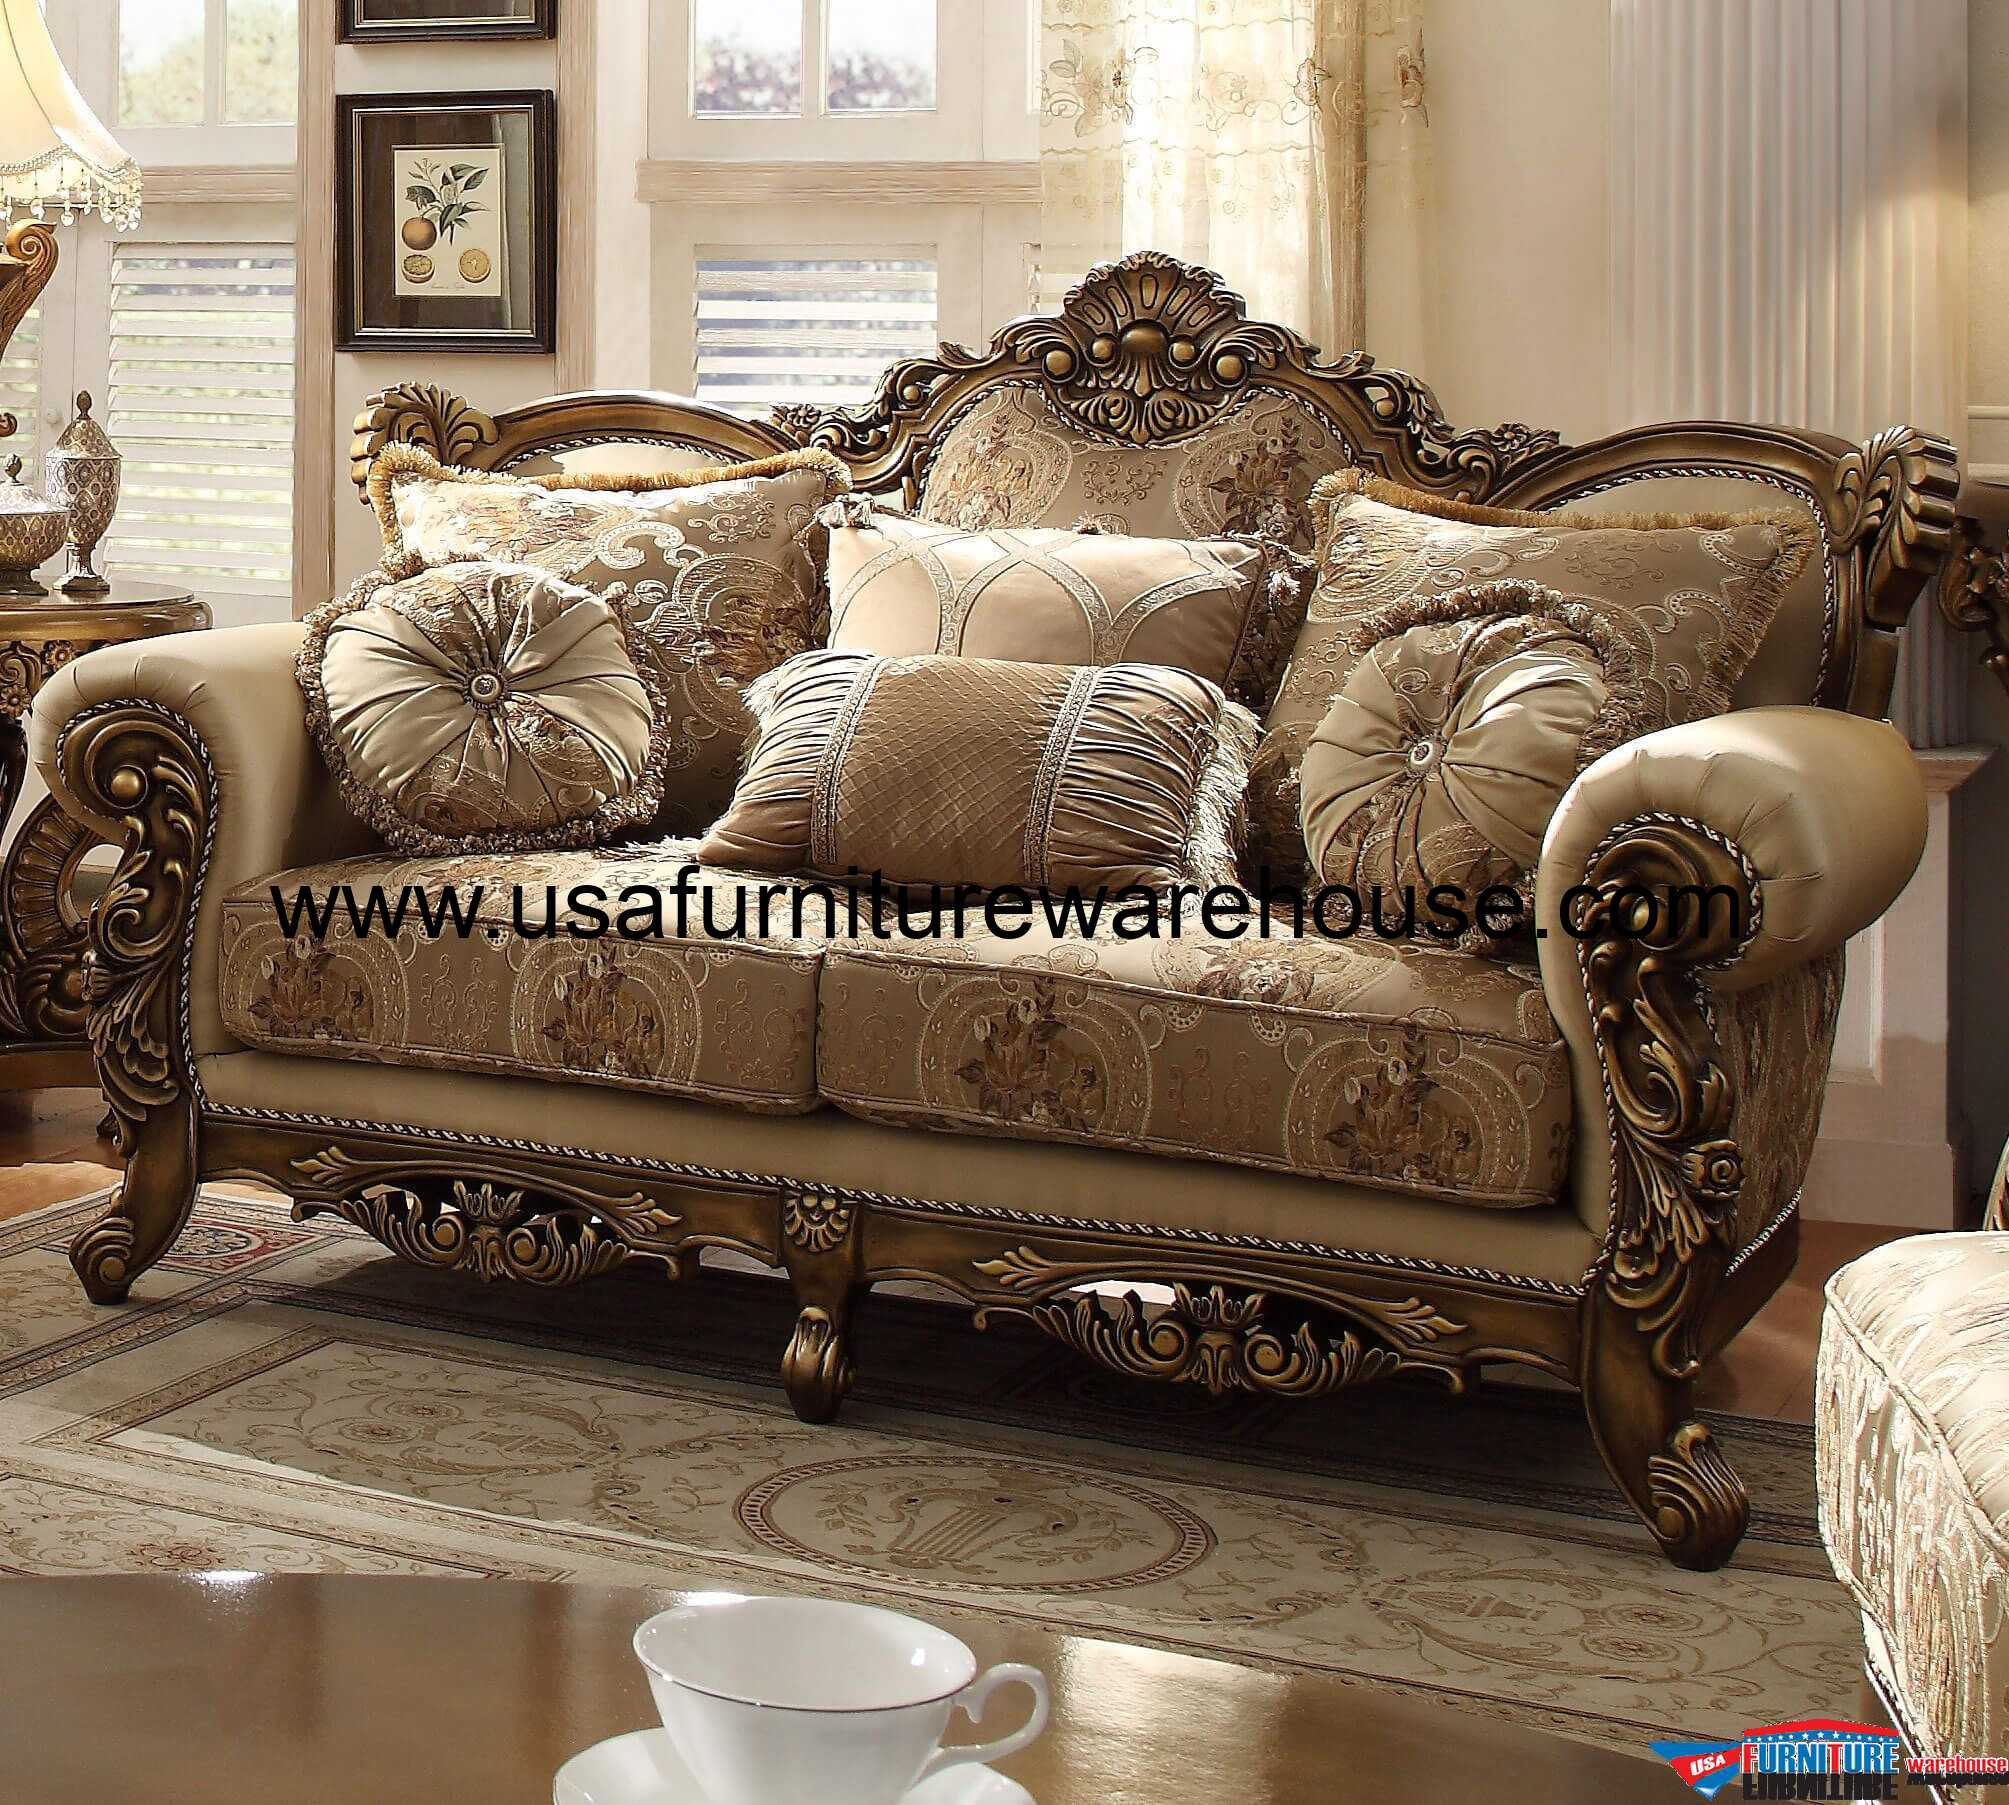 Hd 506 homey design vienna sofa for Hd furniture designs